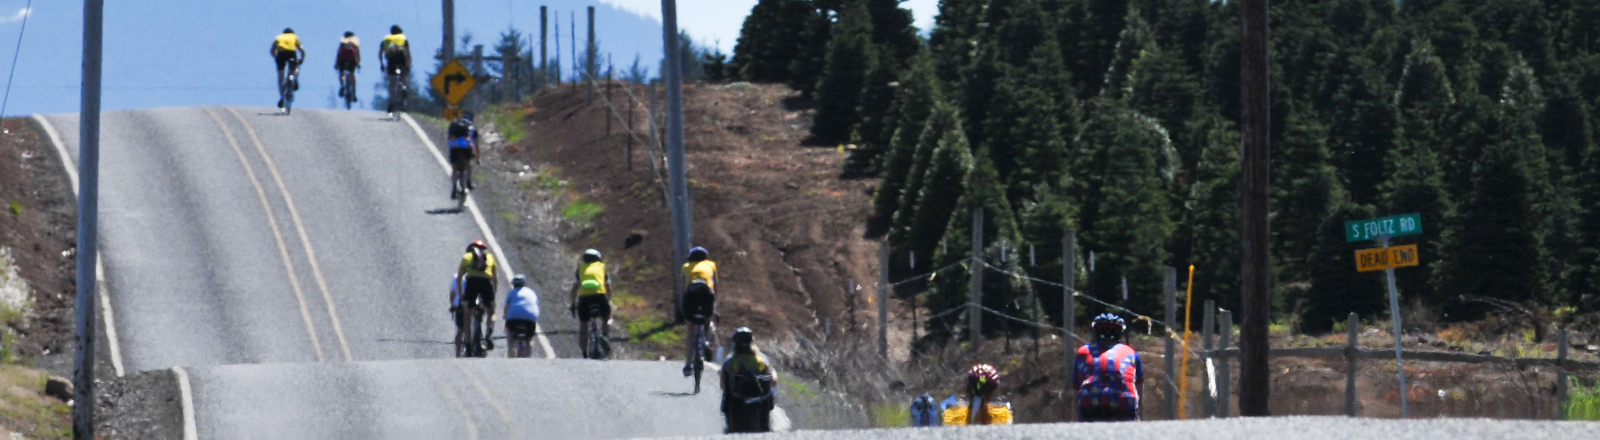 12 cyclists on several hills and dips in the road on route during the Pioneer Century Ride in Oregon's Mt. Hood Territory